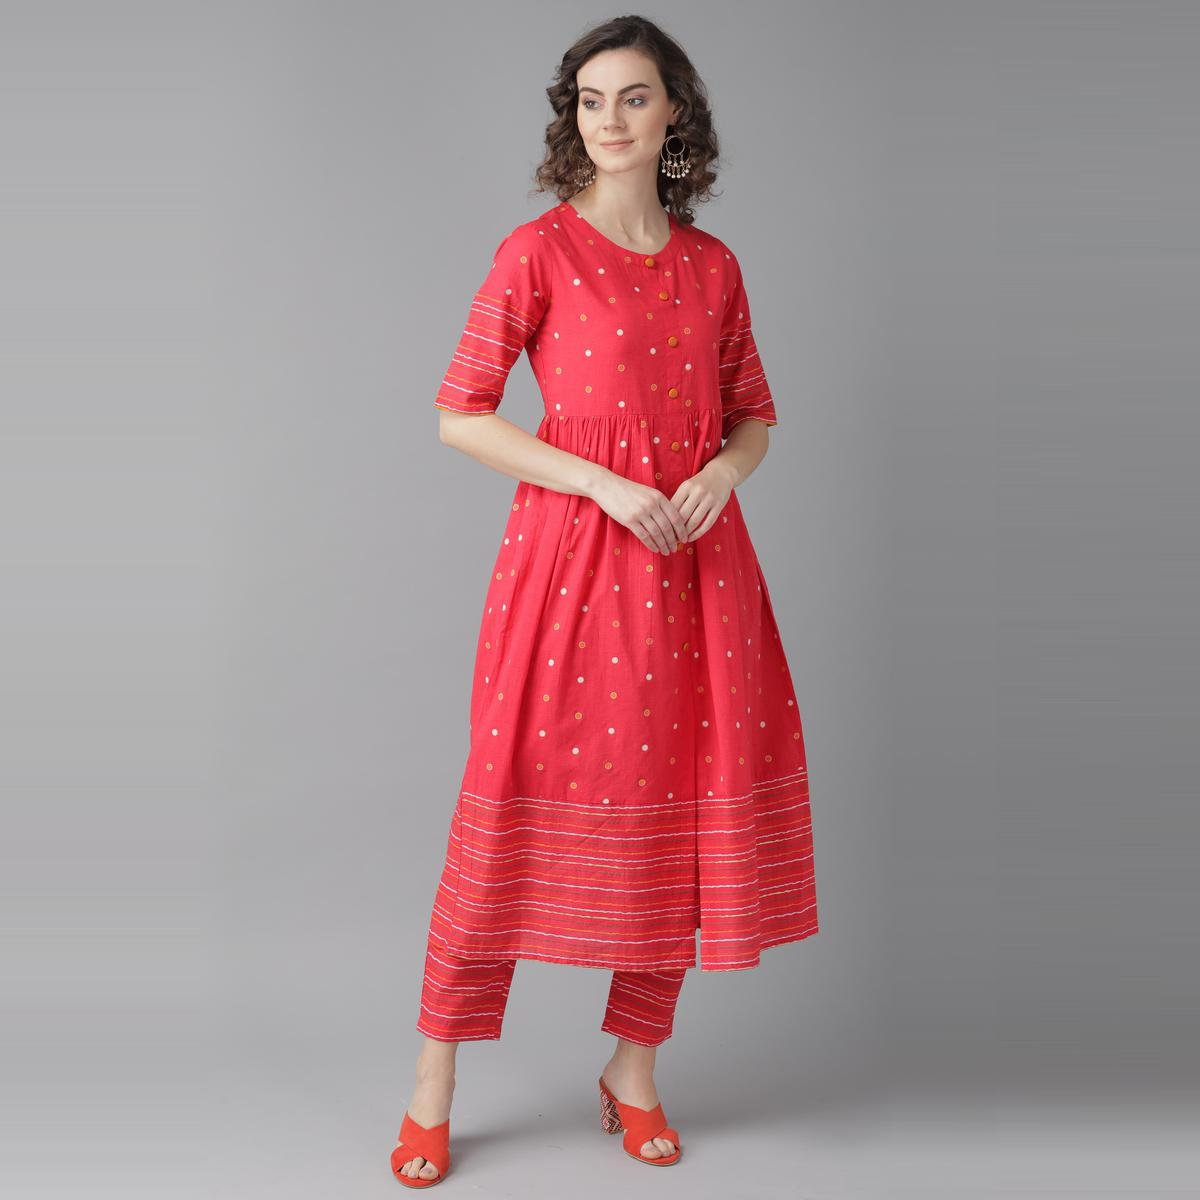 Indo Era - Pink Foil Printed A-Line Kurta with Trouser Sets